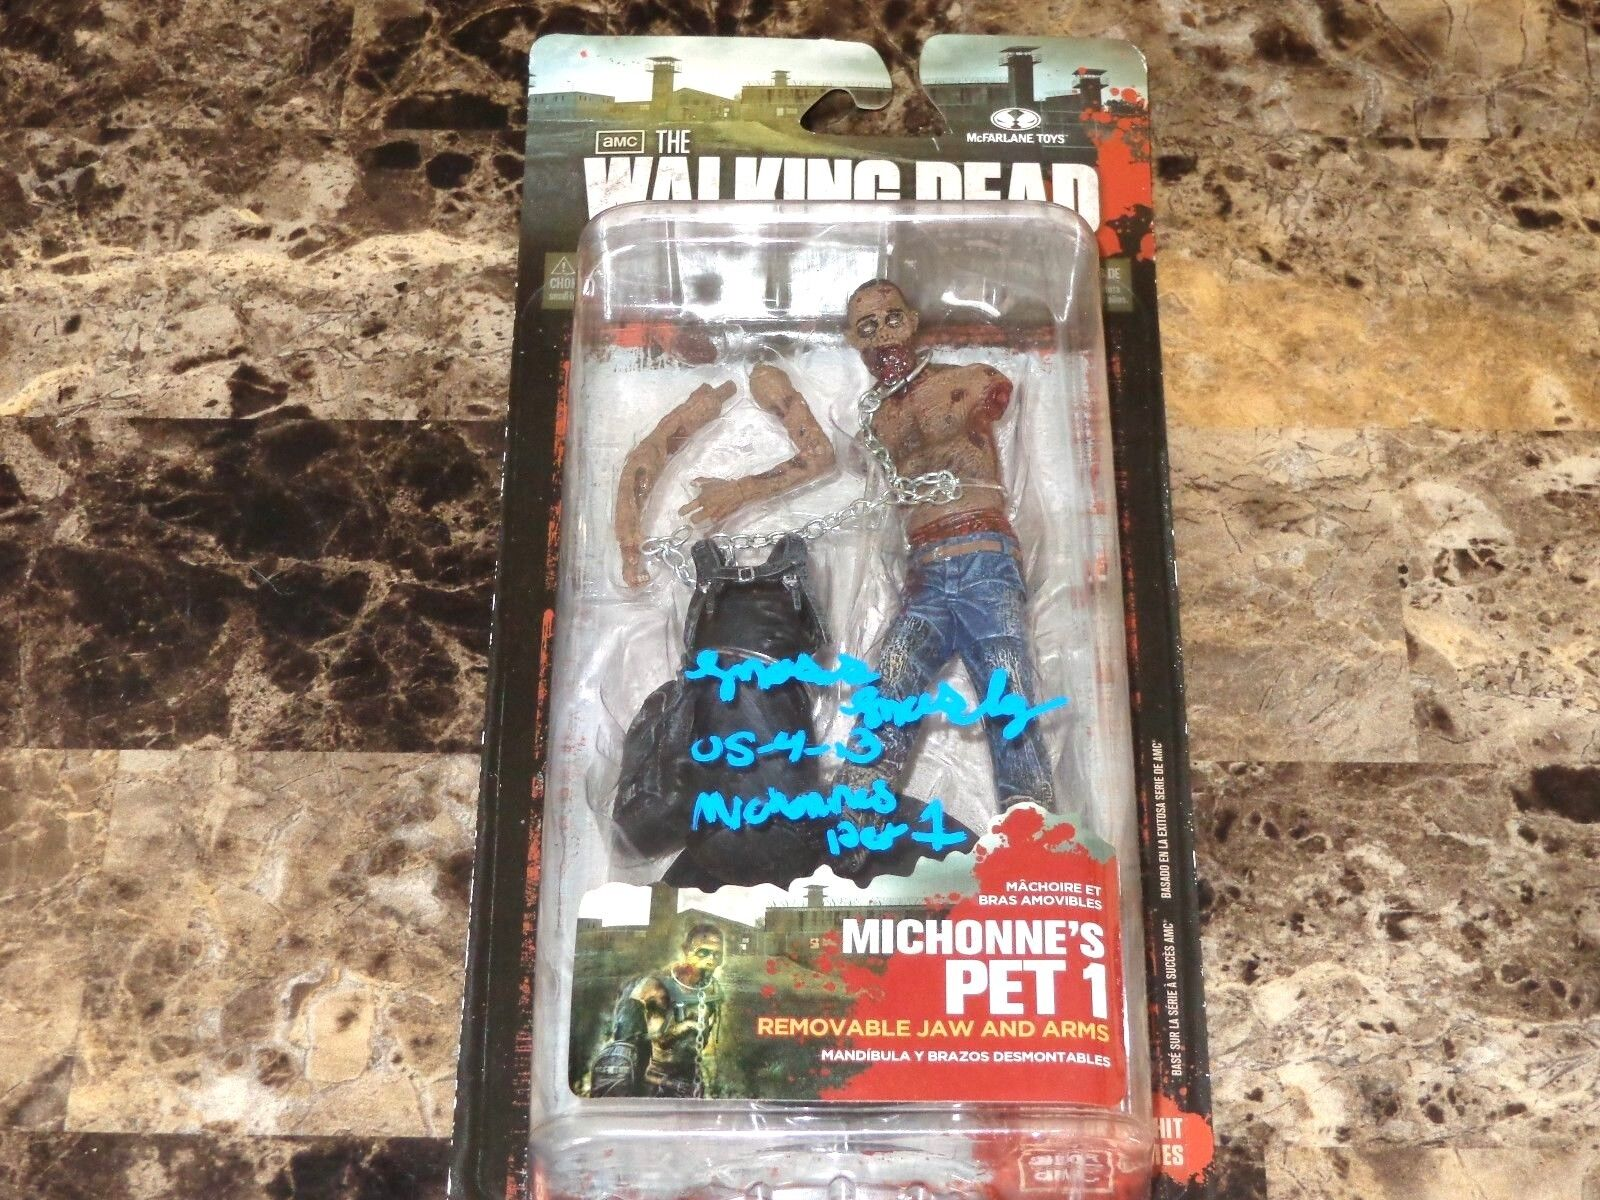 The Walking Dead Signed Action Figure Moses Moseley Michonne's Pet 1 Zombie MOC